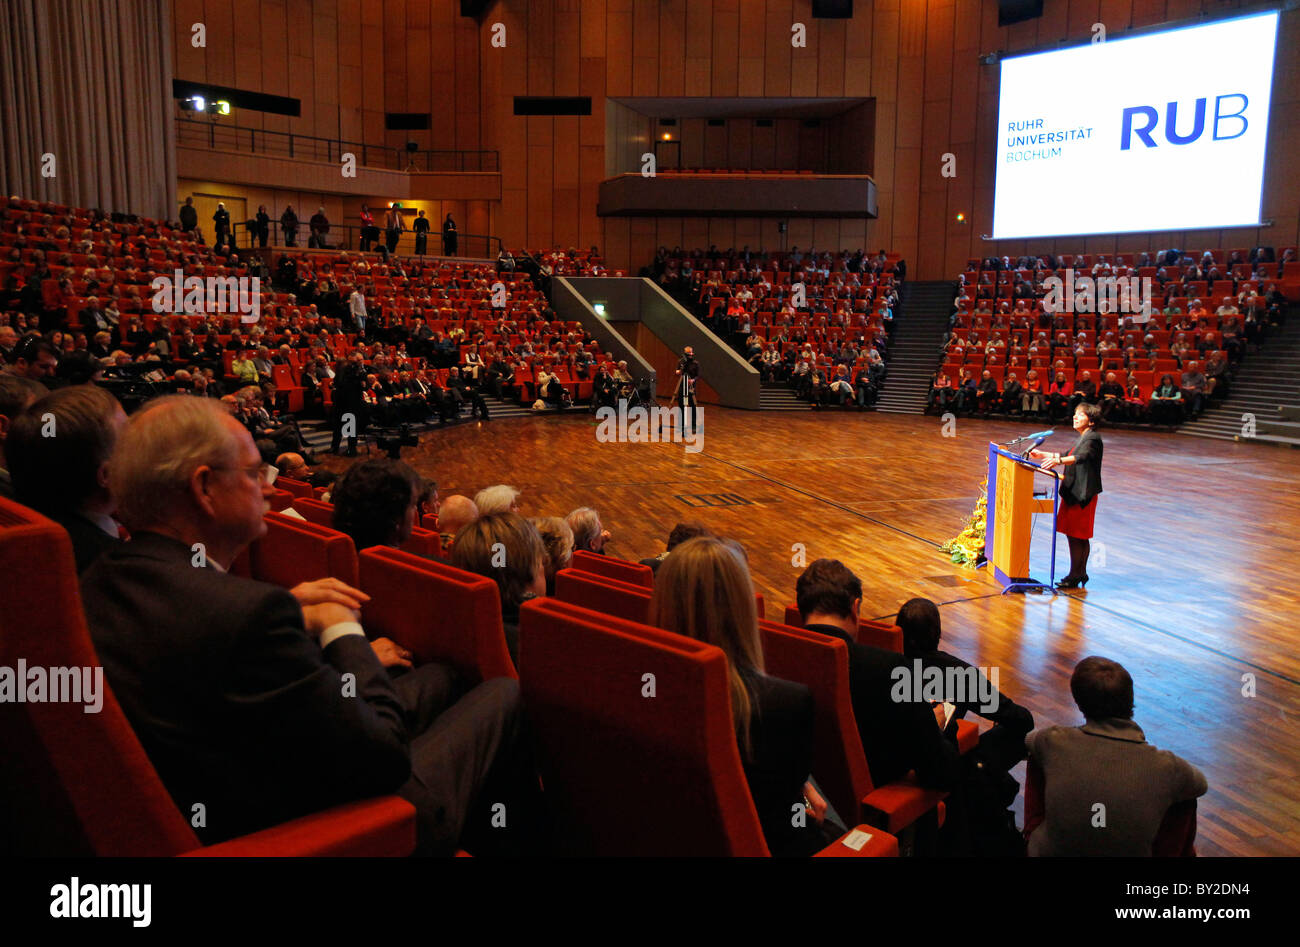 Prof. Dr. Margot Kaessmann during the inaugural lecture of her guest's professorship of the Ruhr University - Stock Image